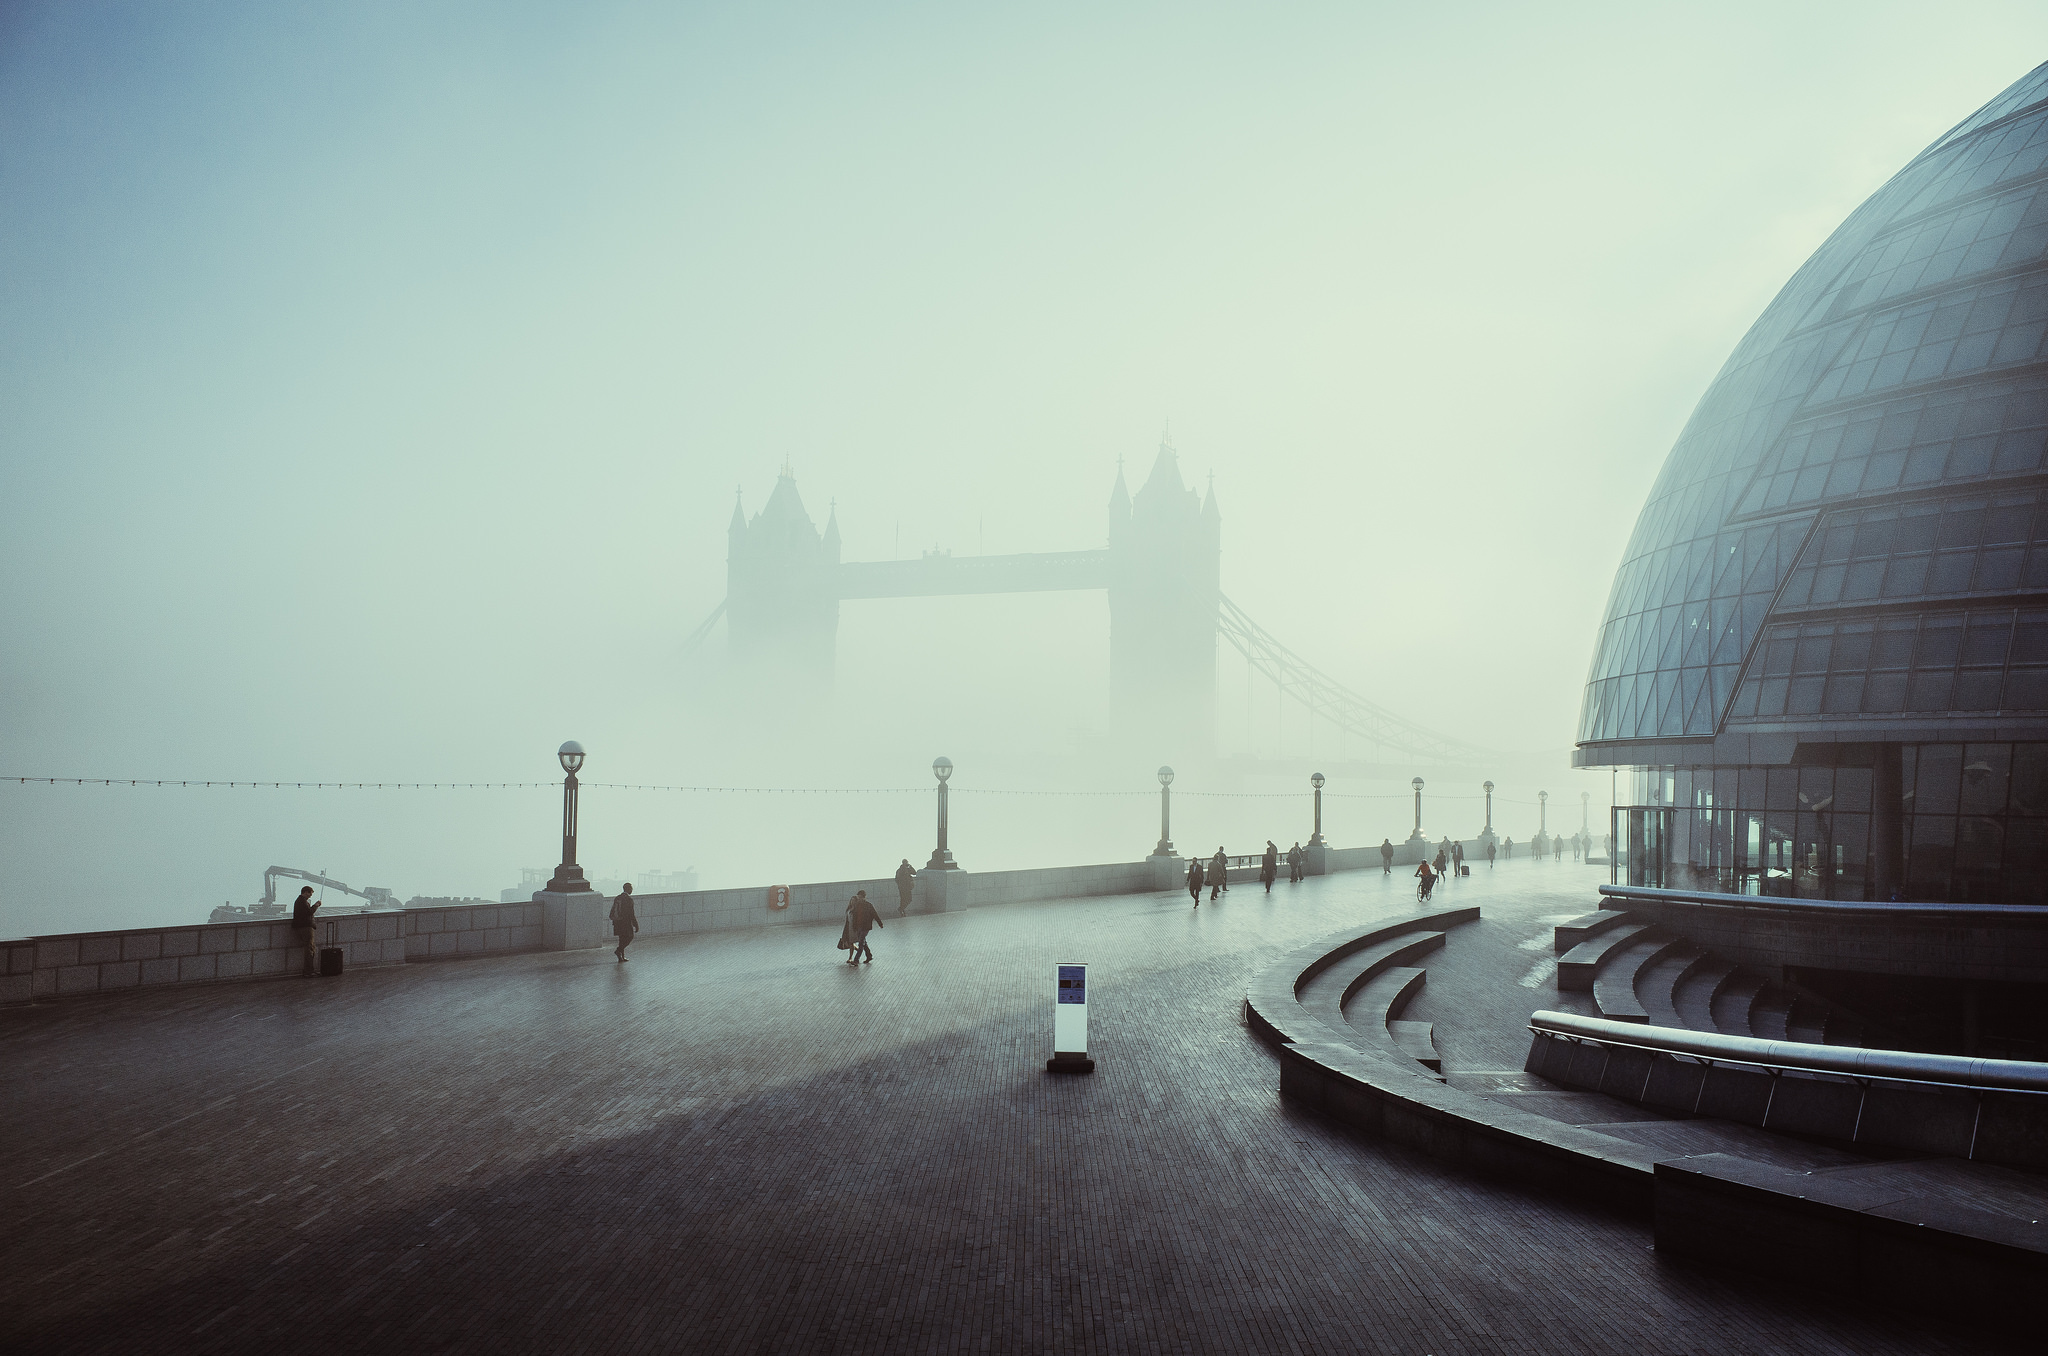 A foggy day in London at Tower Bridge.